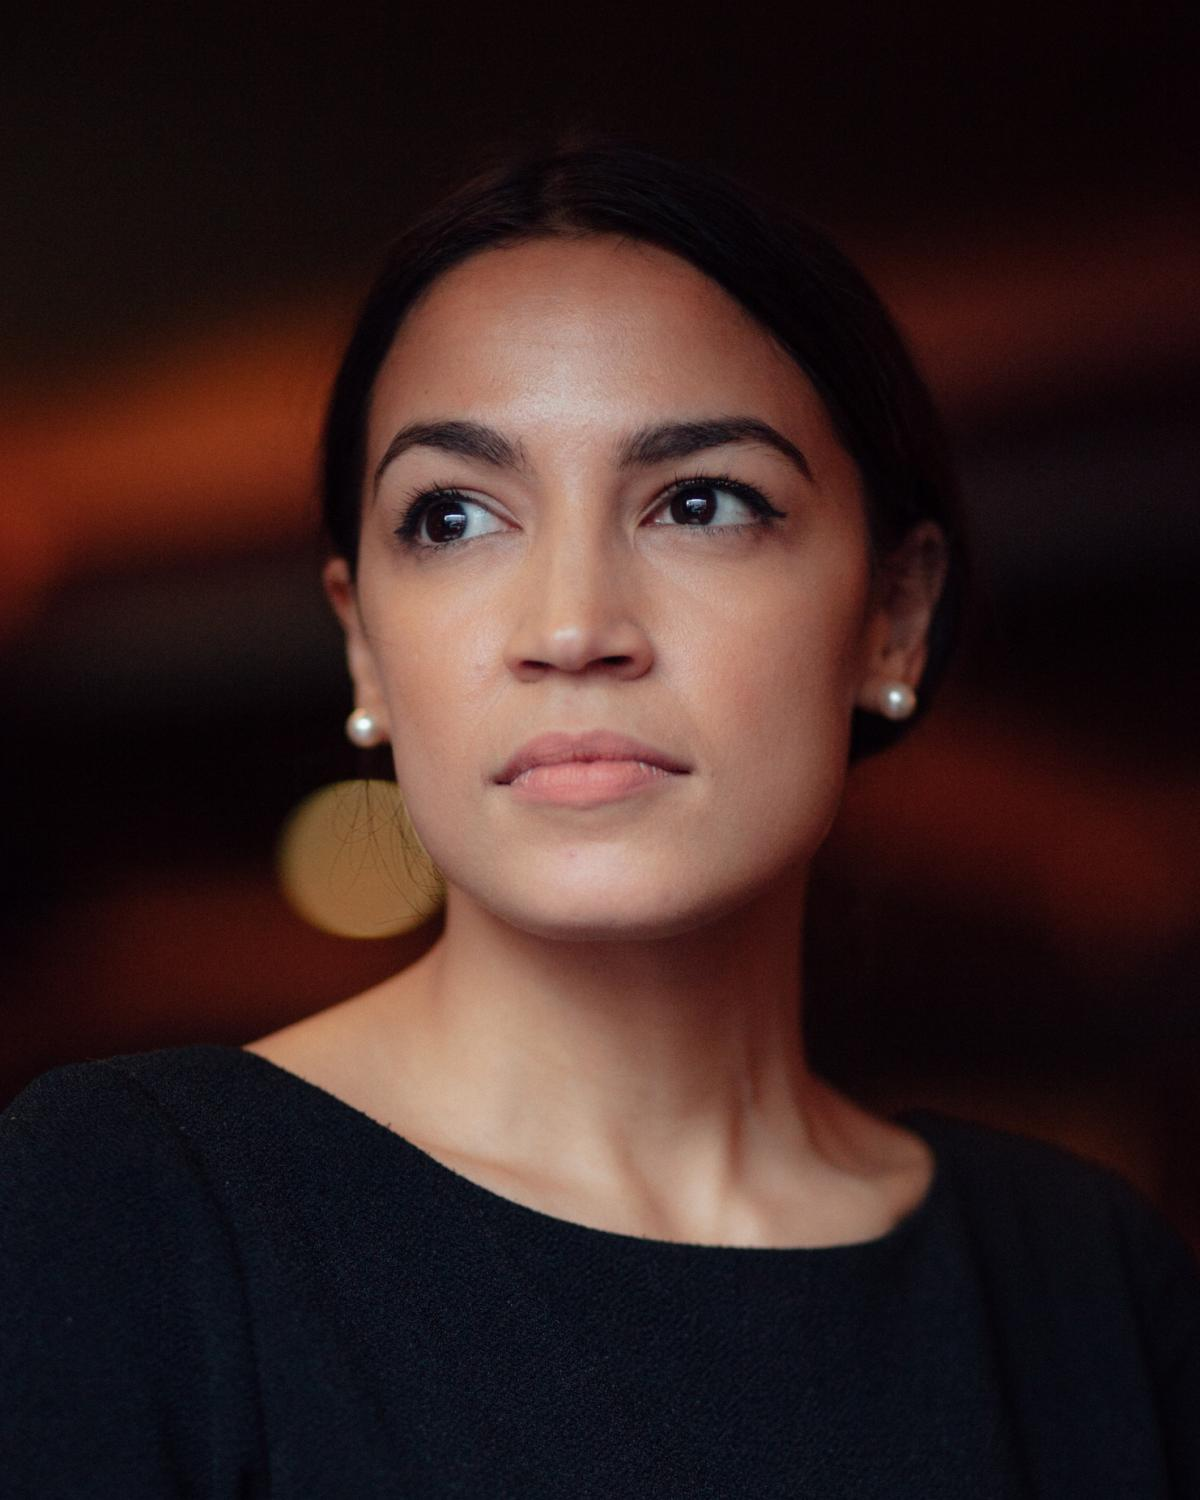 Portrait of political candidate Alexandria Ocasio-Cortez after her first public speech where declared her run for office. Rockville Center, New York, June 2017